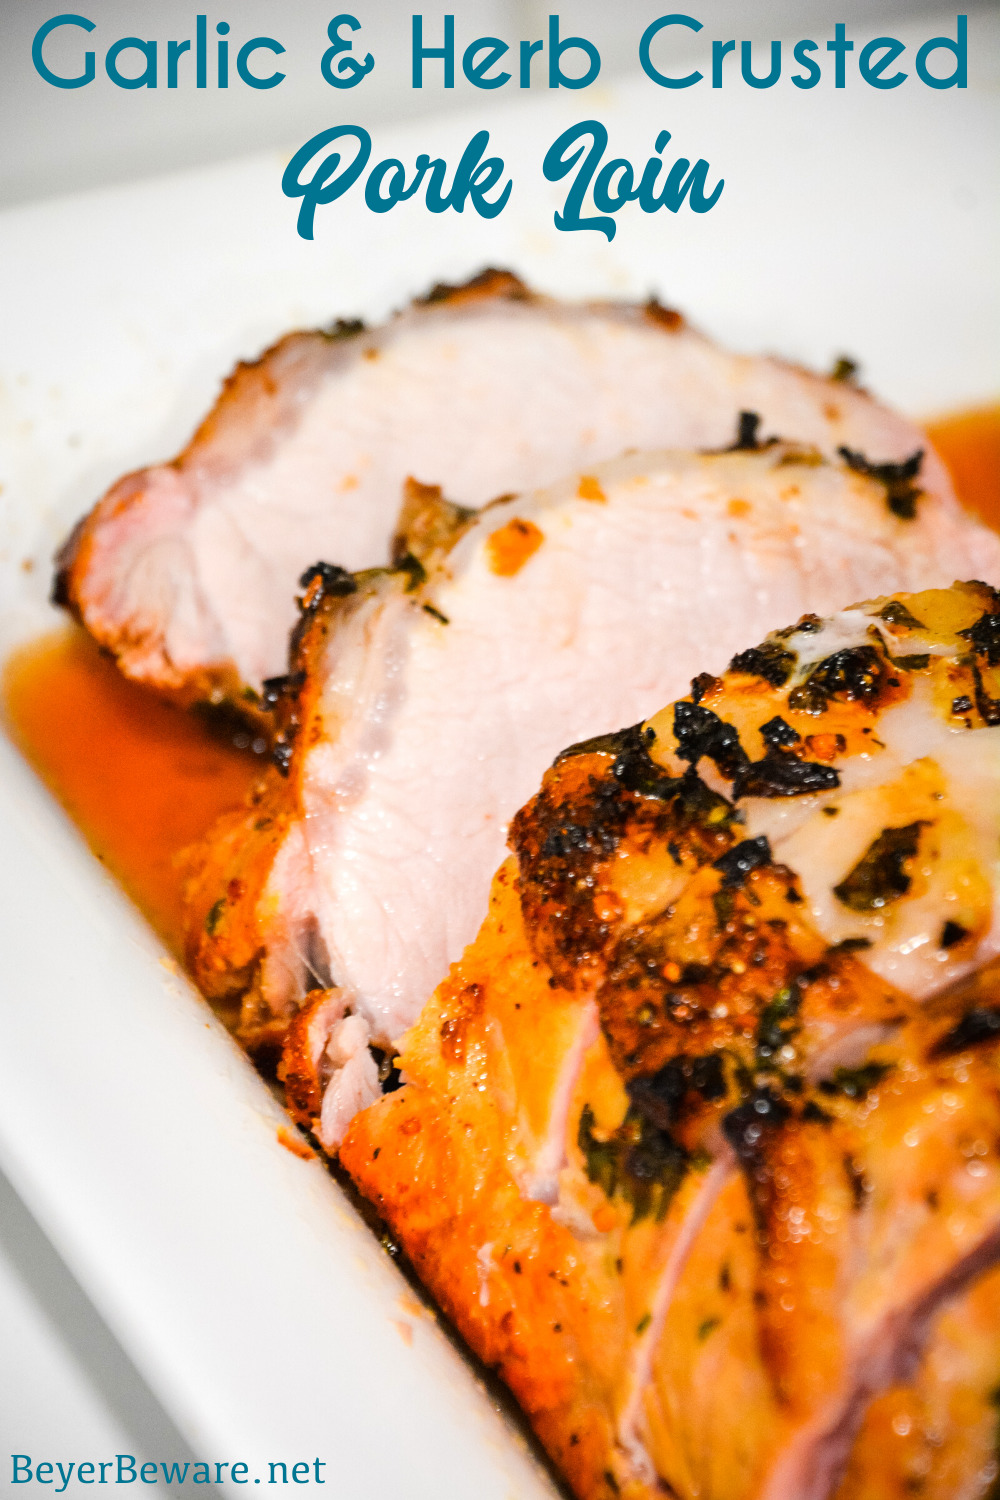 Garlic and Herb Crusted Grilled Pork Loin uses fresh herbs, garlic, and onions with simple wine, lemon juice, and oil marinade then grilled to juicy pork loin perfection.